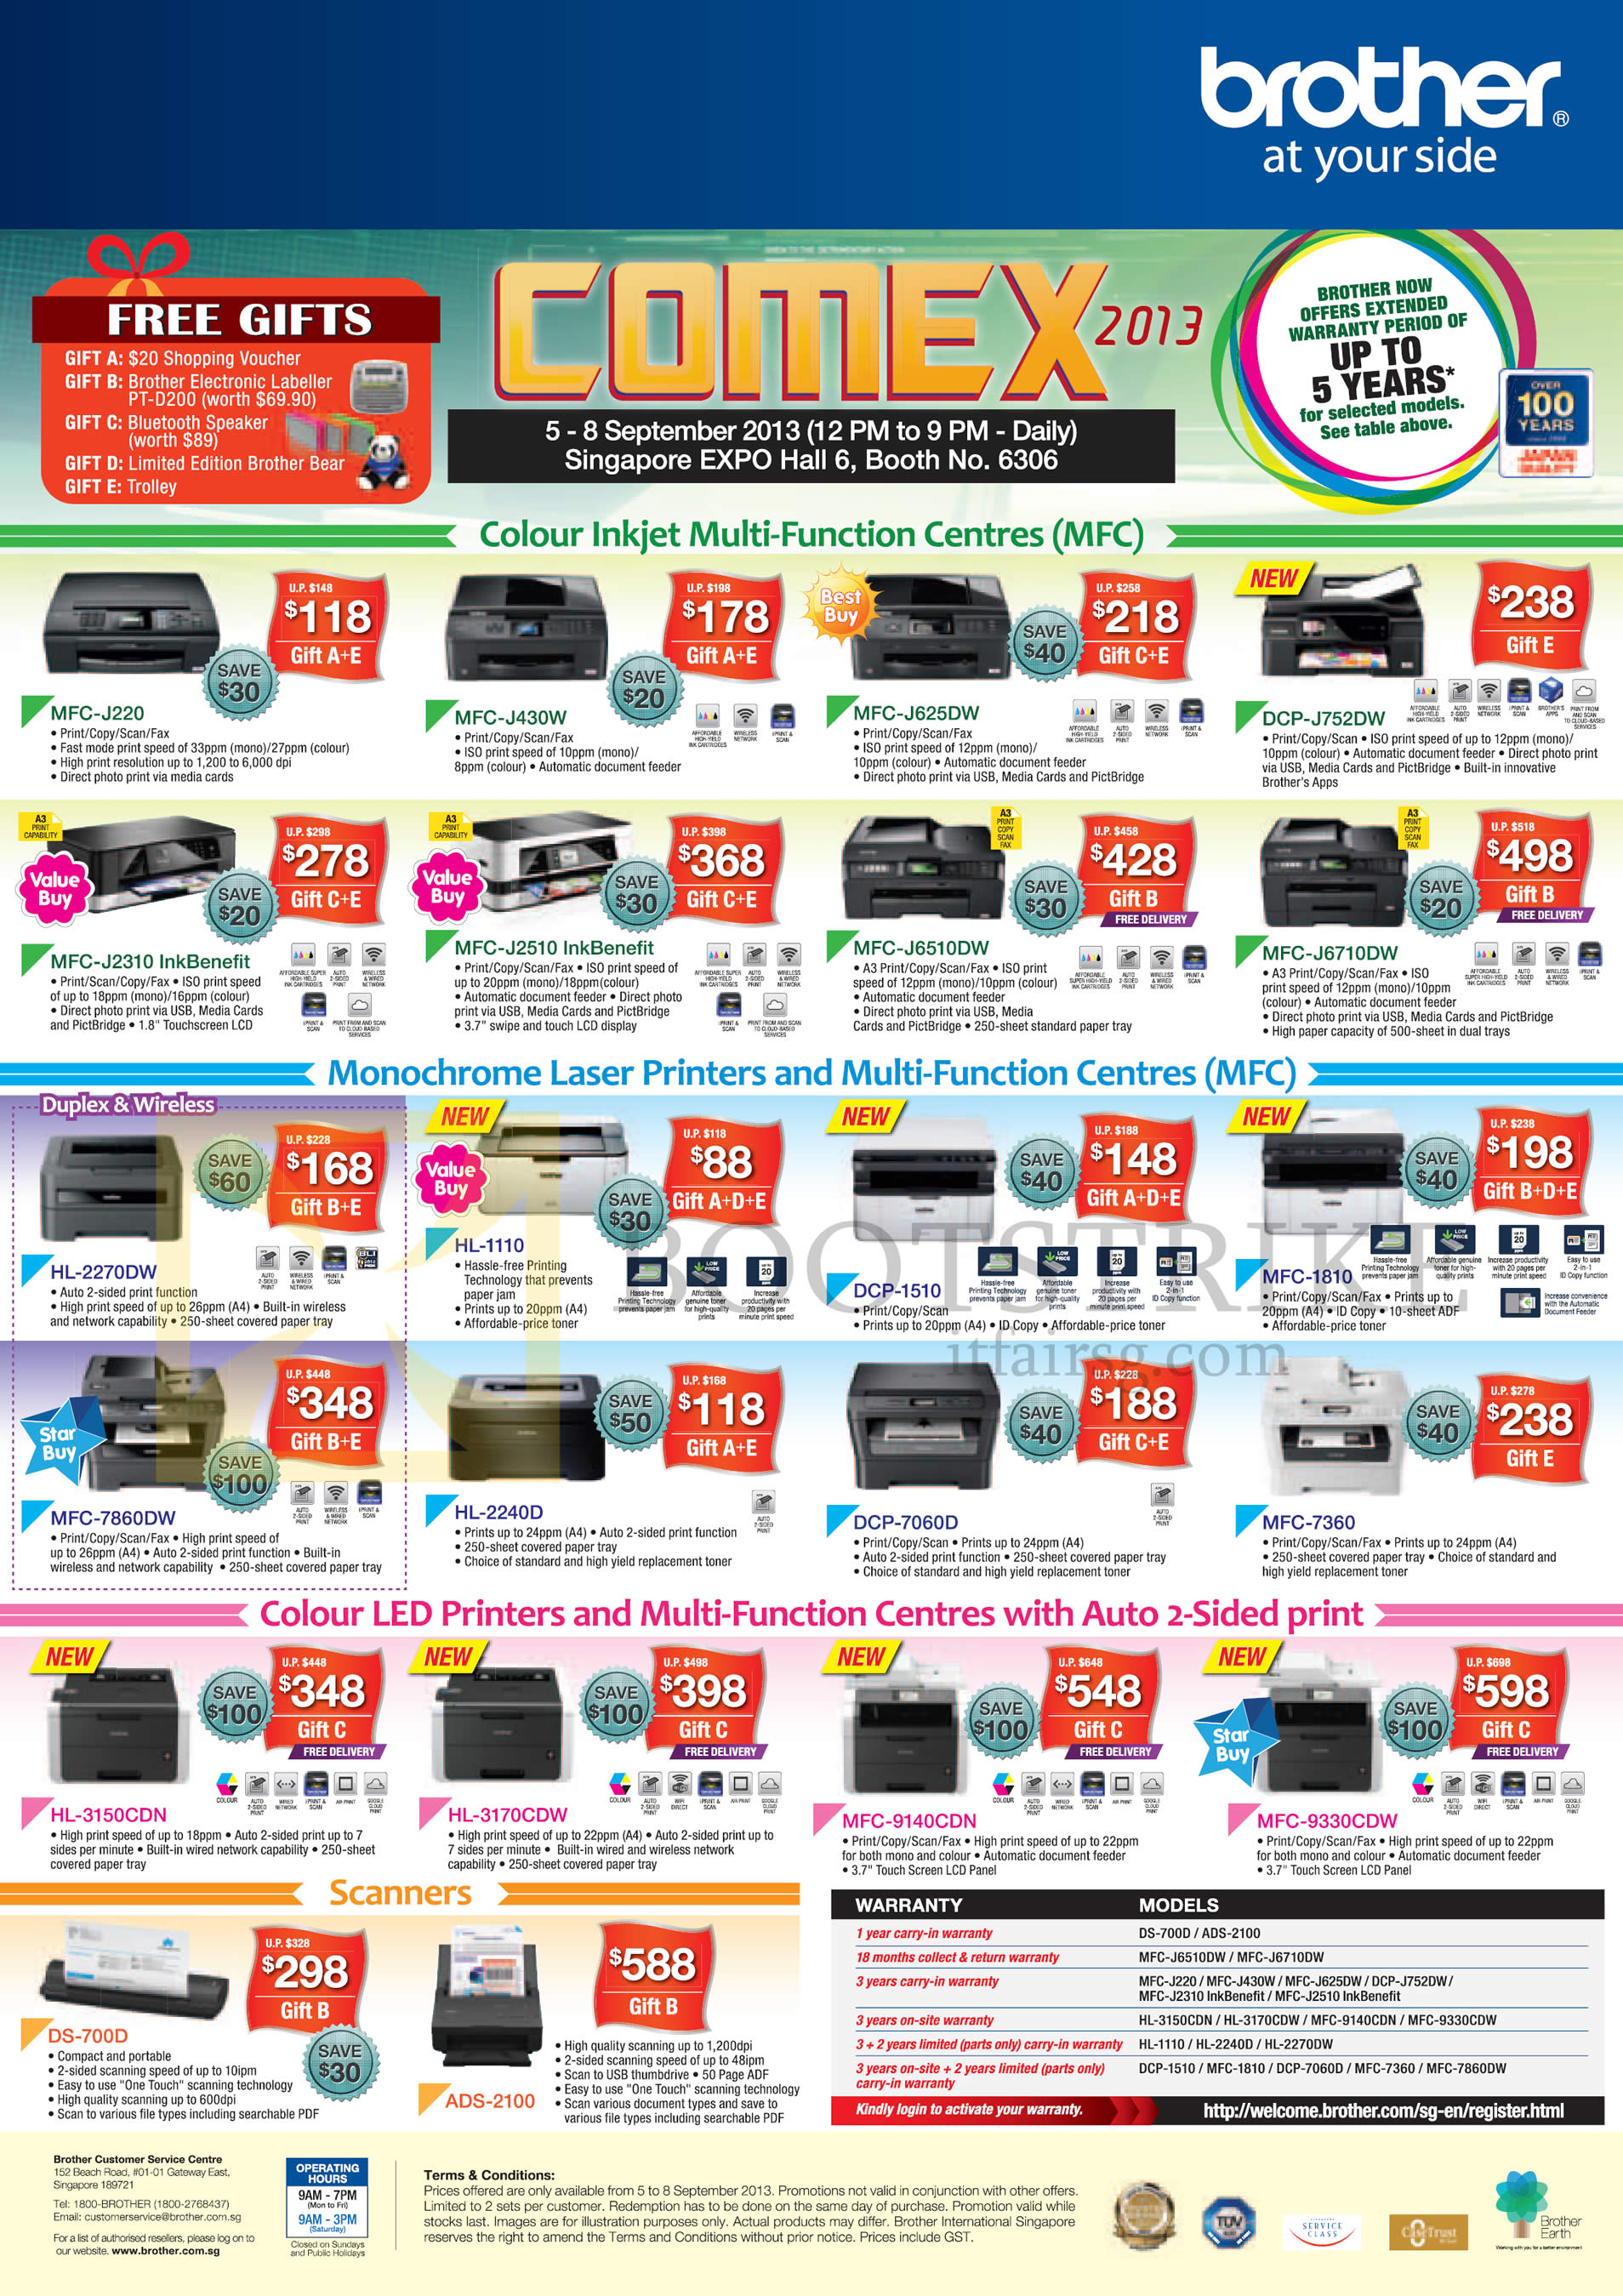 COMEX 2013 price list image brochure of Brother Printers Inkjet MFC J220 J430 J625DW J6510DW, Laser DCP 7060D HL 2240D 2270DW, LED HL 3150CDN 3170CDW, Scanners DS-700D ADS-2100